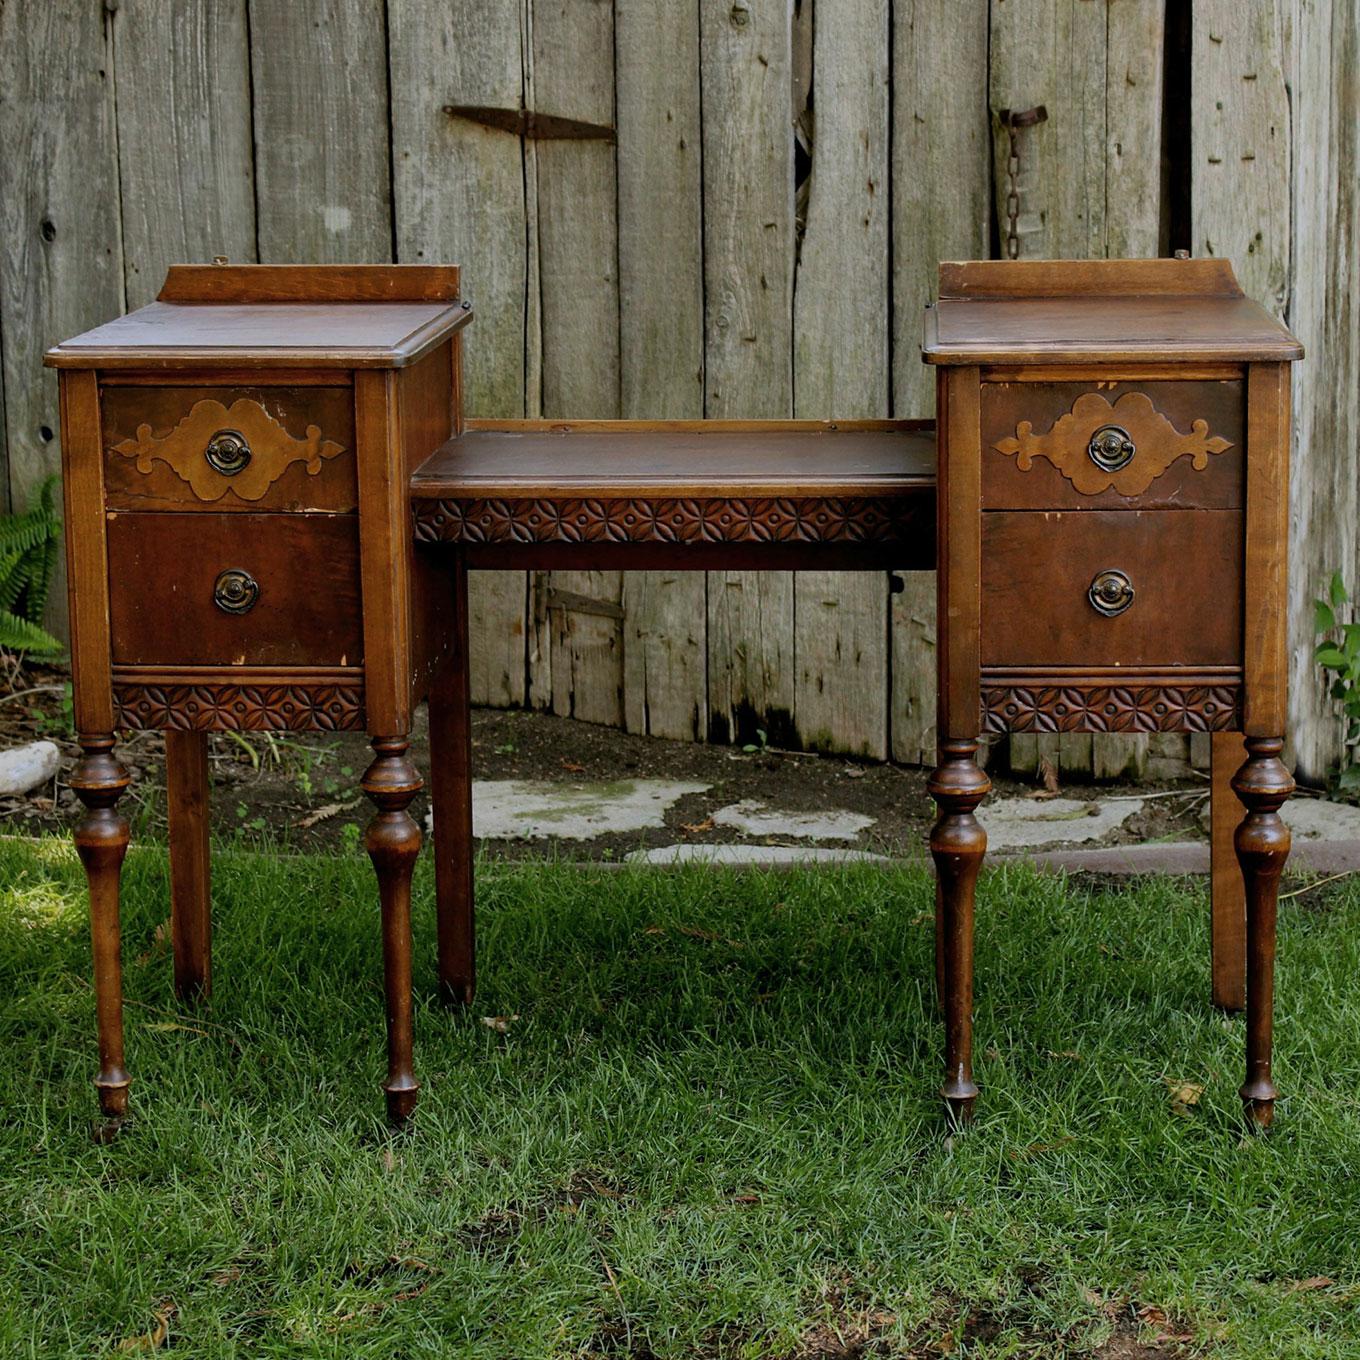 Vintage Vanity Furniture Rentals